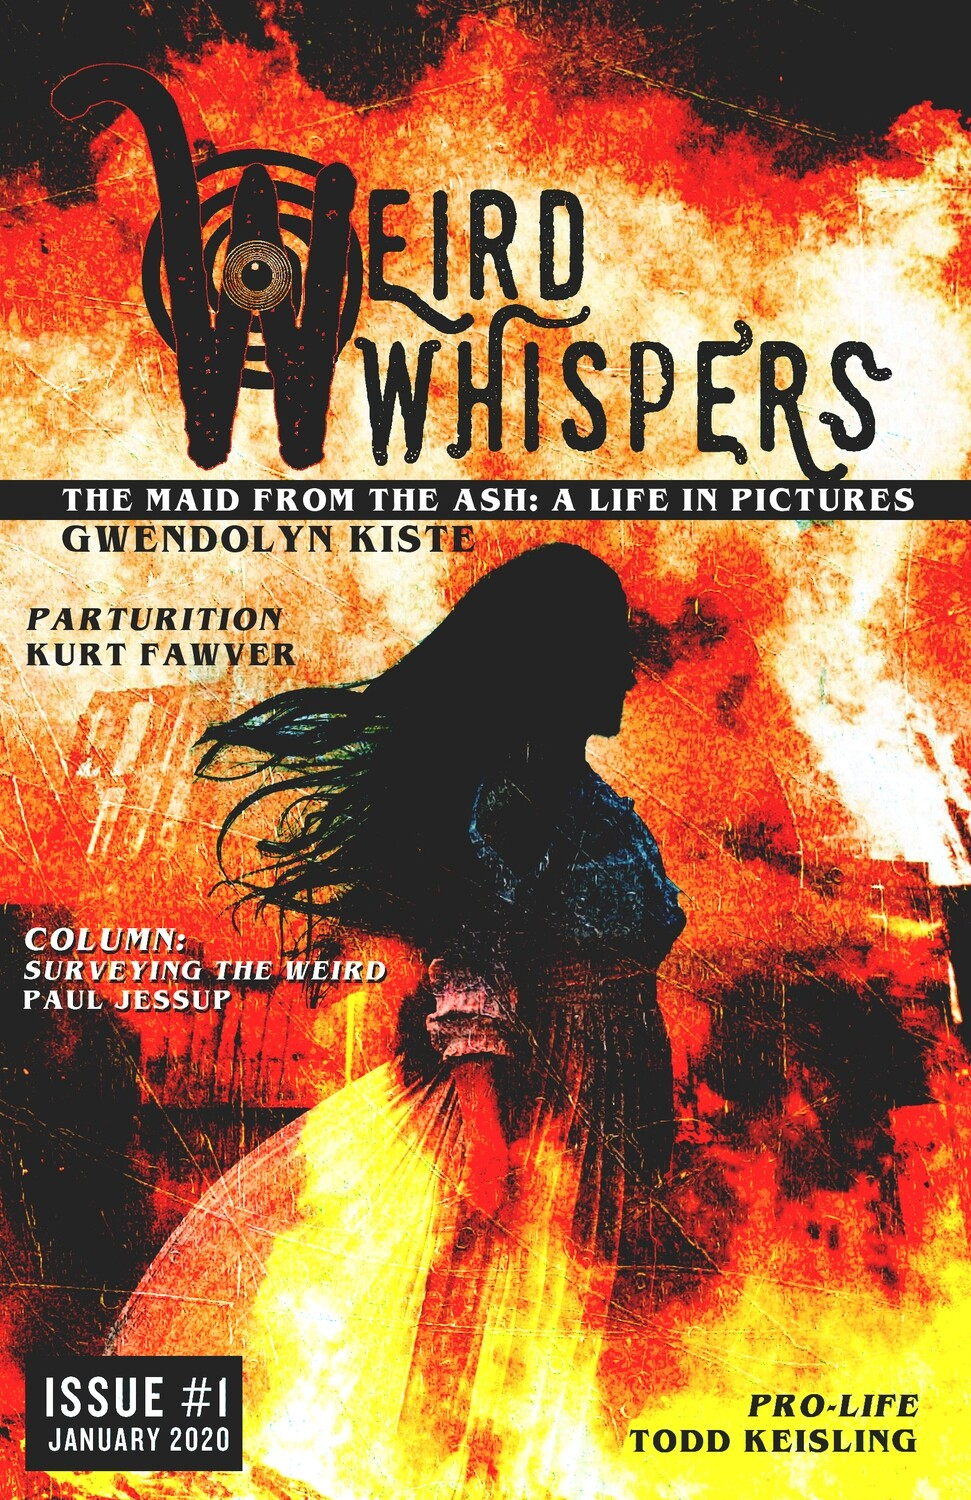 Weird Whispers: Issue #1